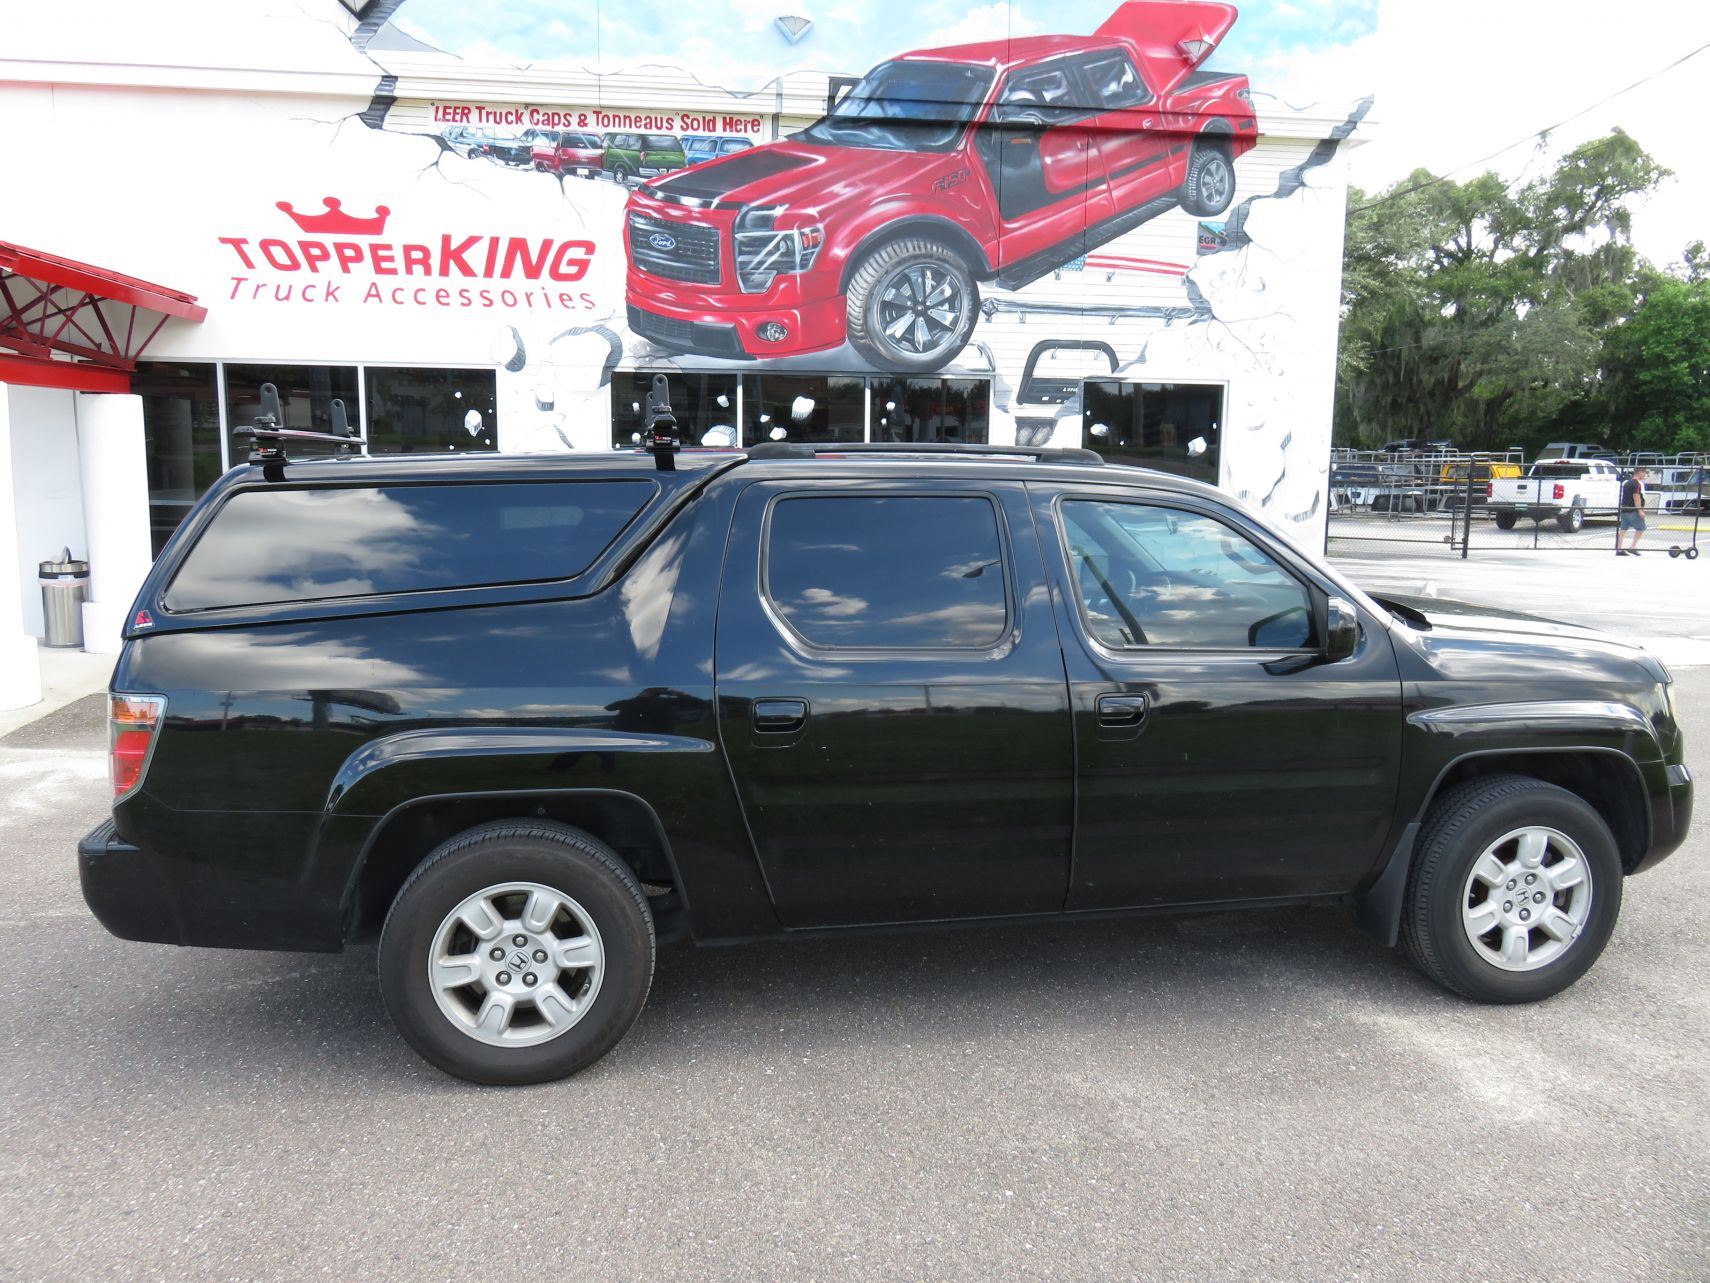 2007 Ridgeline with LEER 100XQ, Roof Racks, Hitch, Tint by TopperKING in Brandon, FL 813-689-2449 or Clearwater, FL 727-530-9066. Call today!